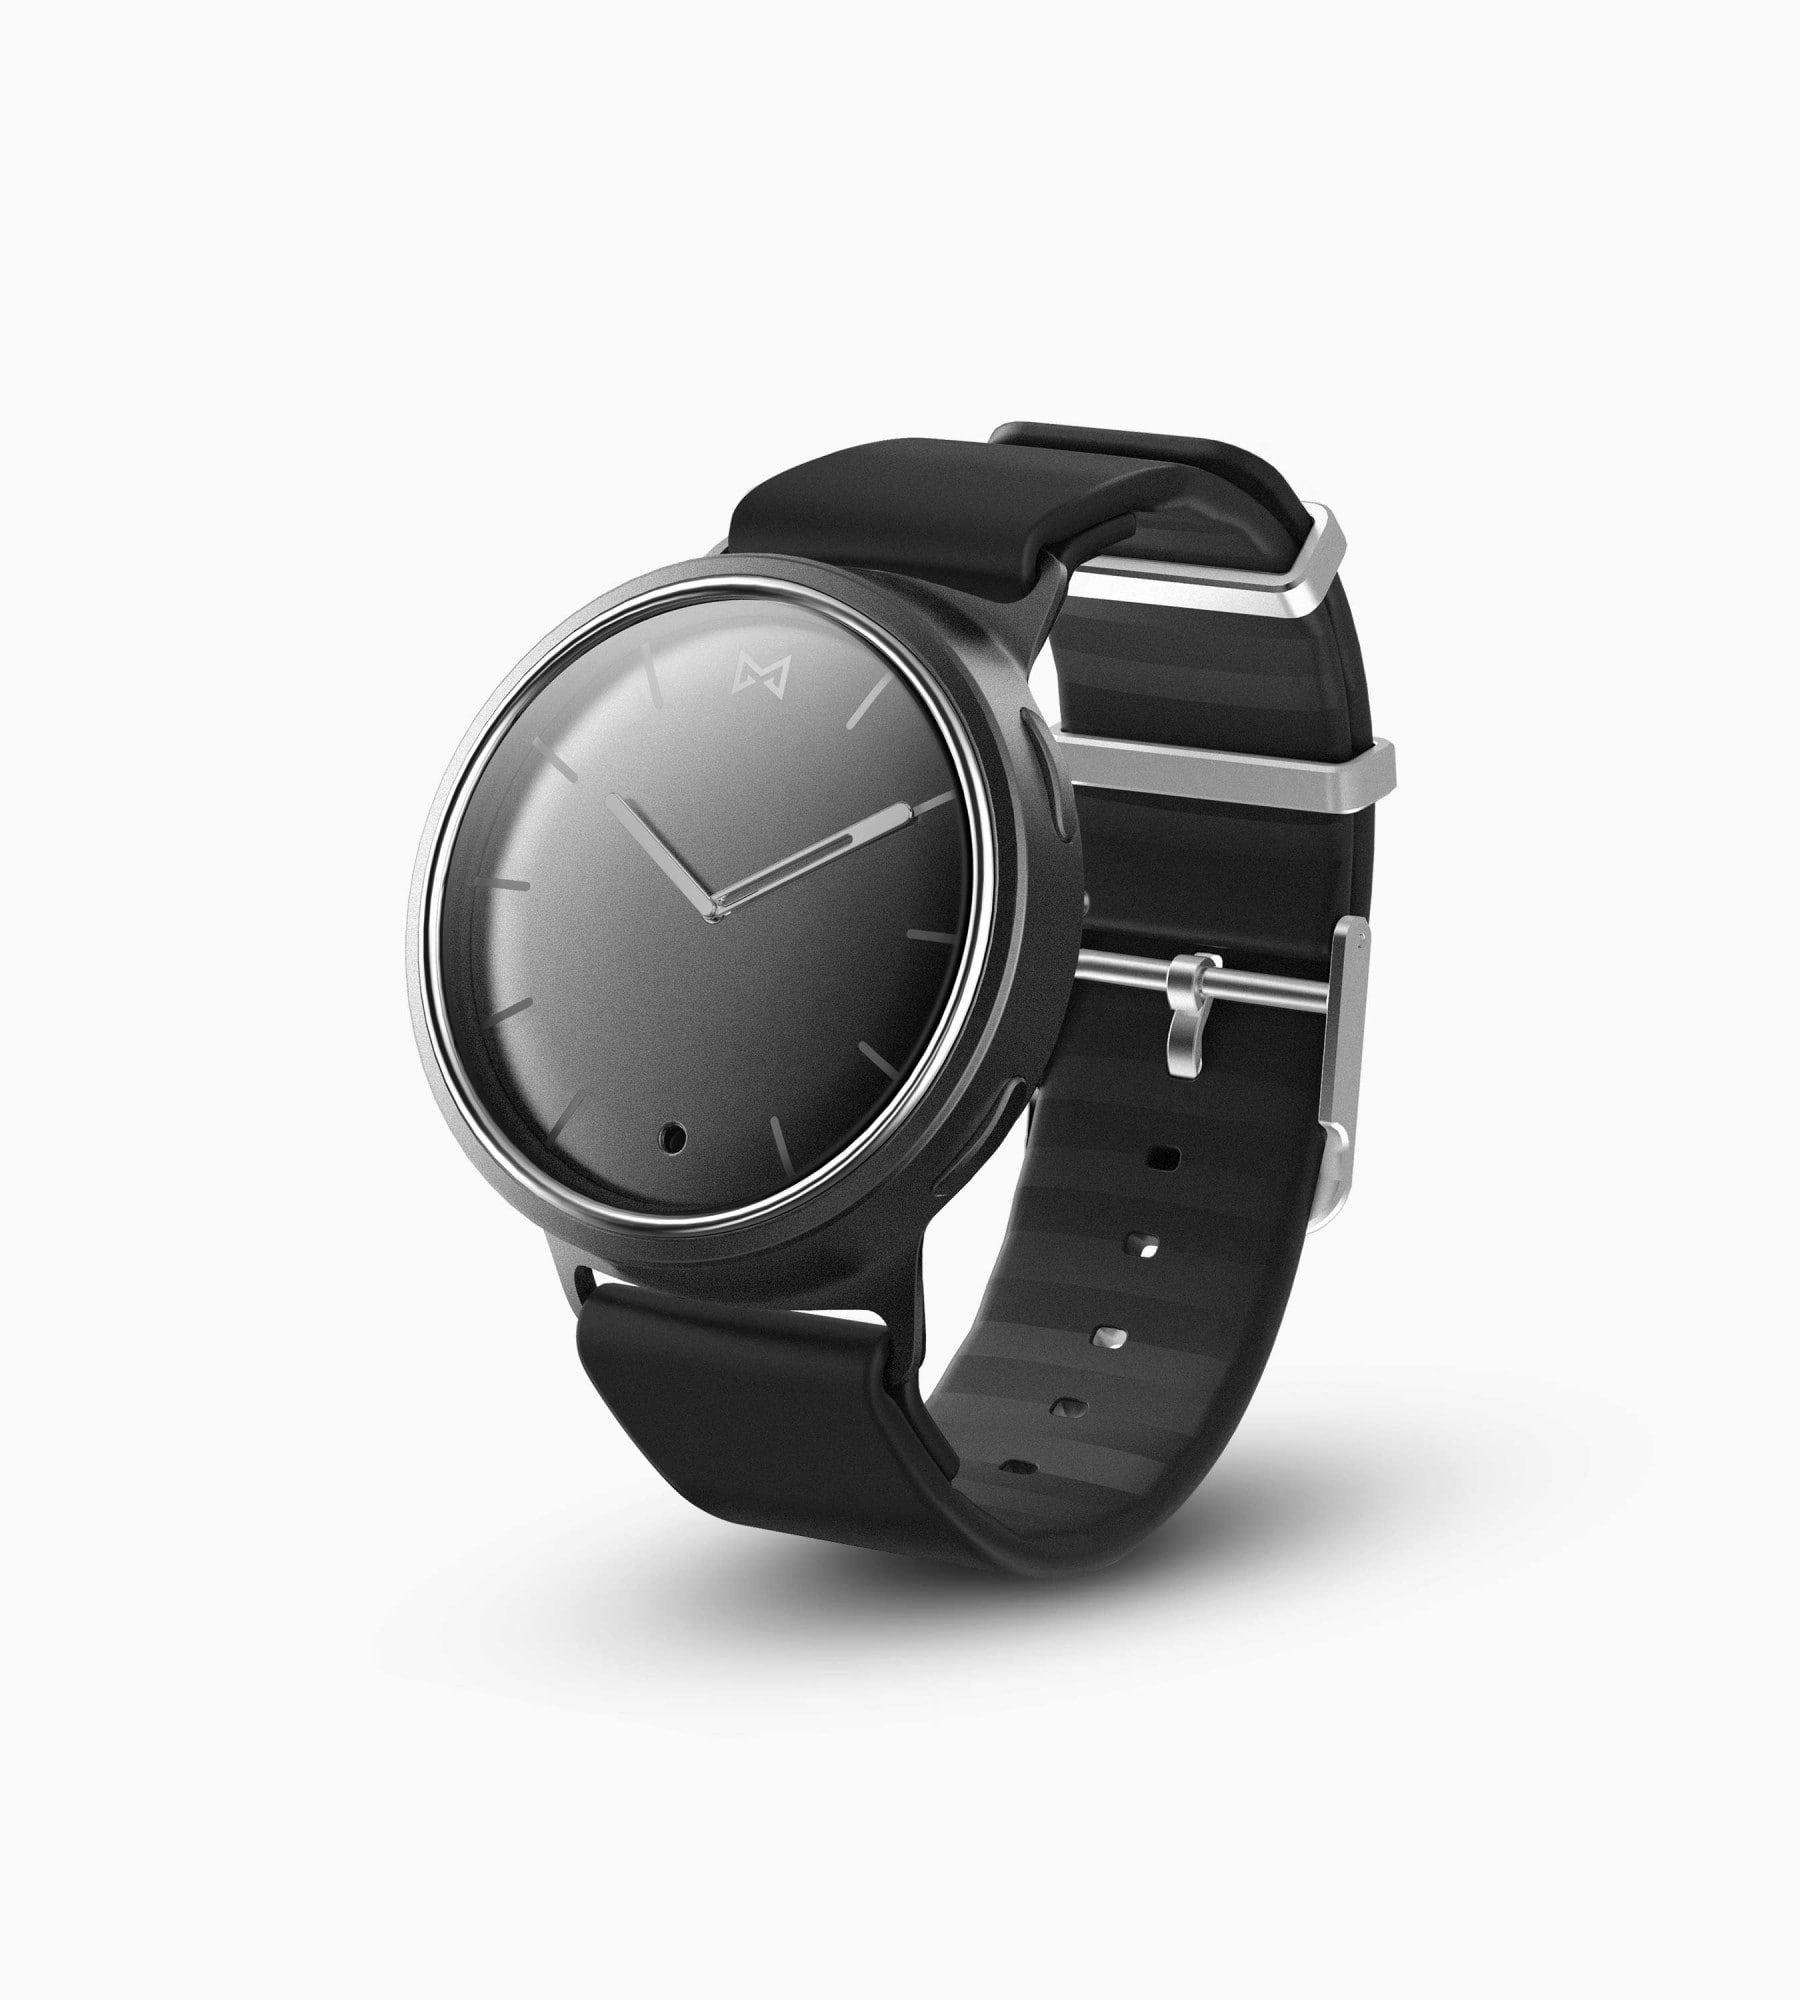 Misfit: Up To 50% Off Select Smartwatches + Extra 25% Off w/ Code